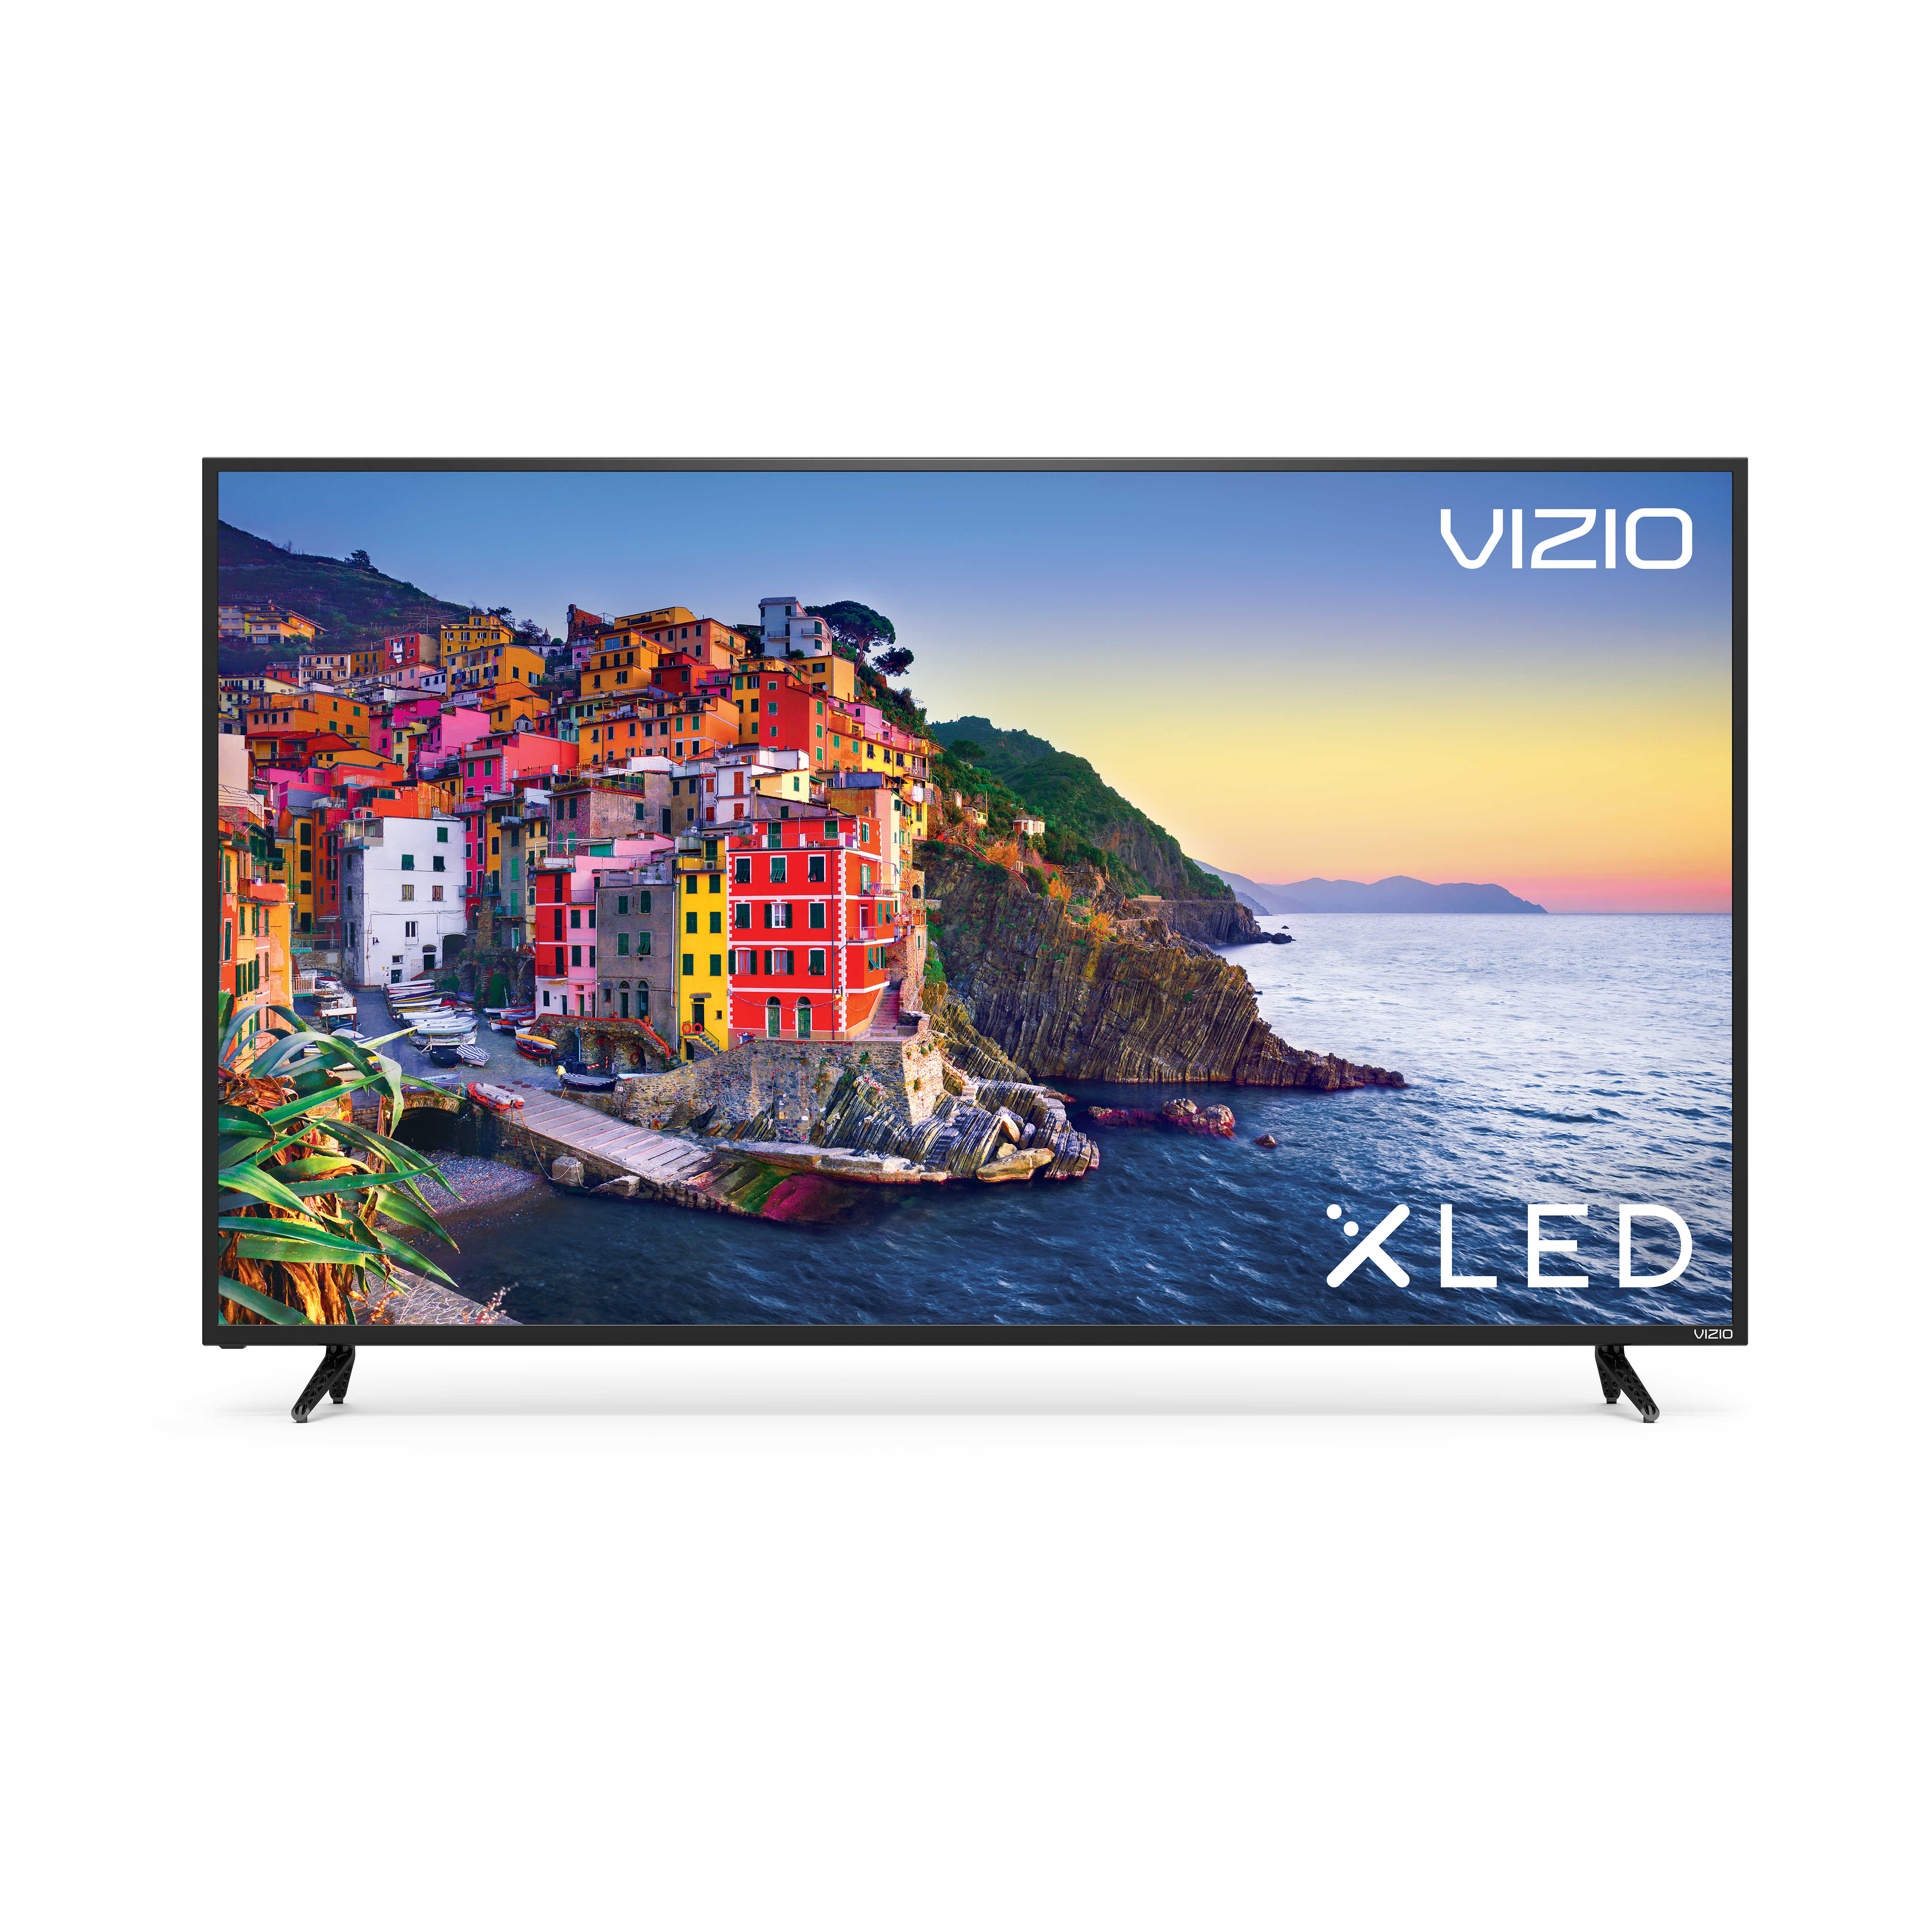 VIZIO 70' Class 4K (2160P) Smart XLED Home Theater Display (E70-E3)